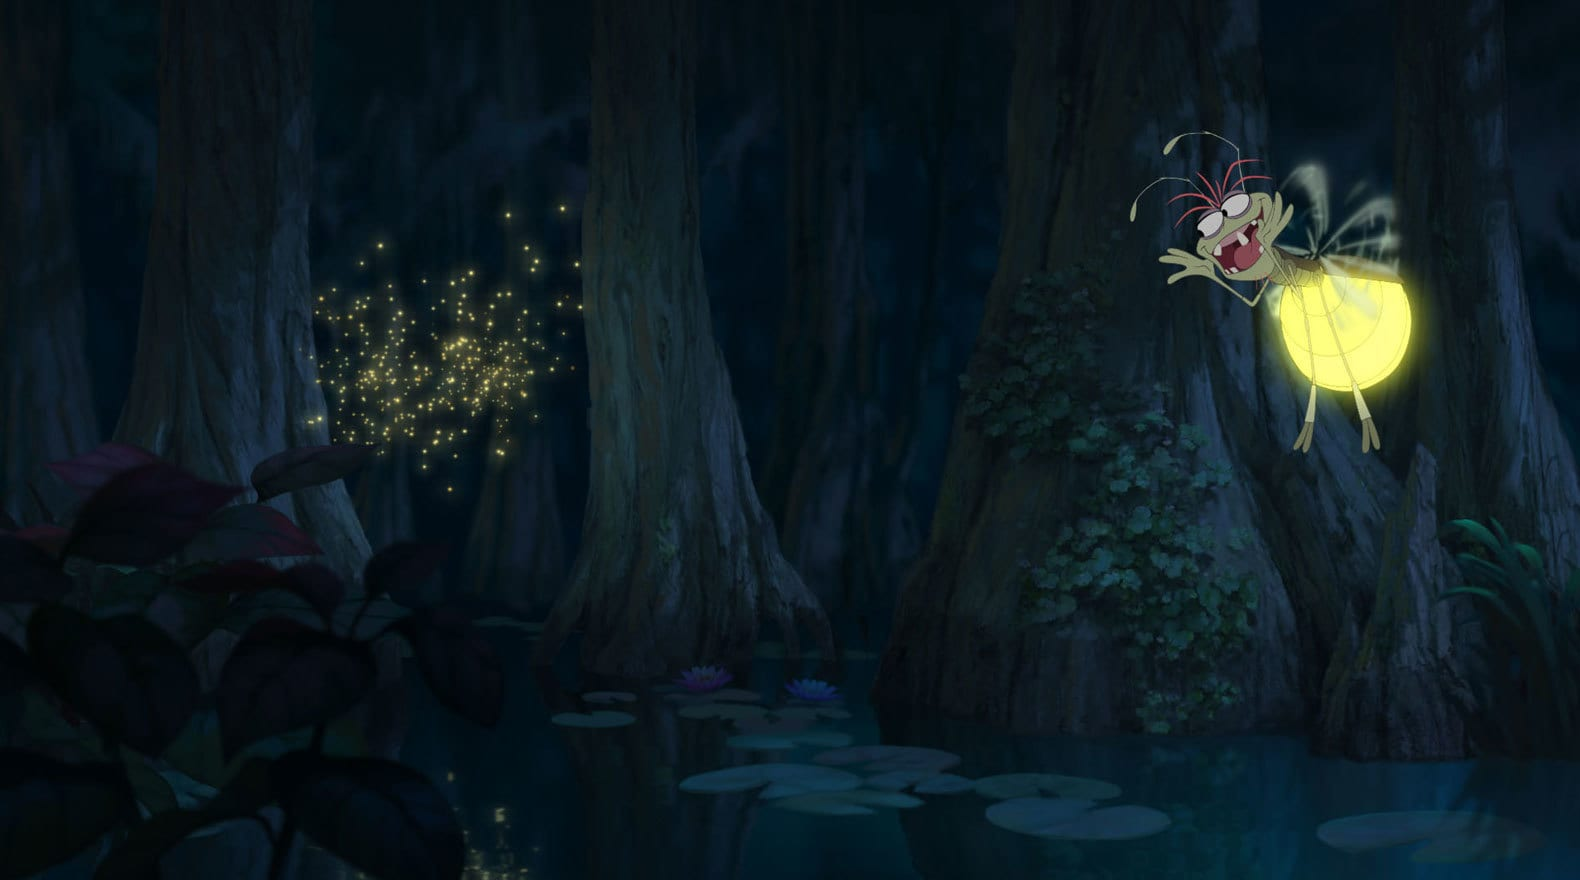 Ray a firefly voiced by Jim Cummings singing in front of a swarm of fireflies